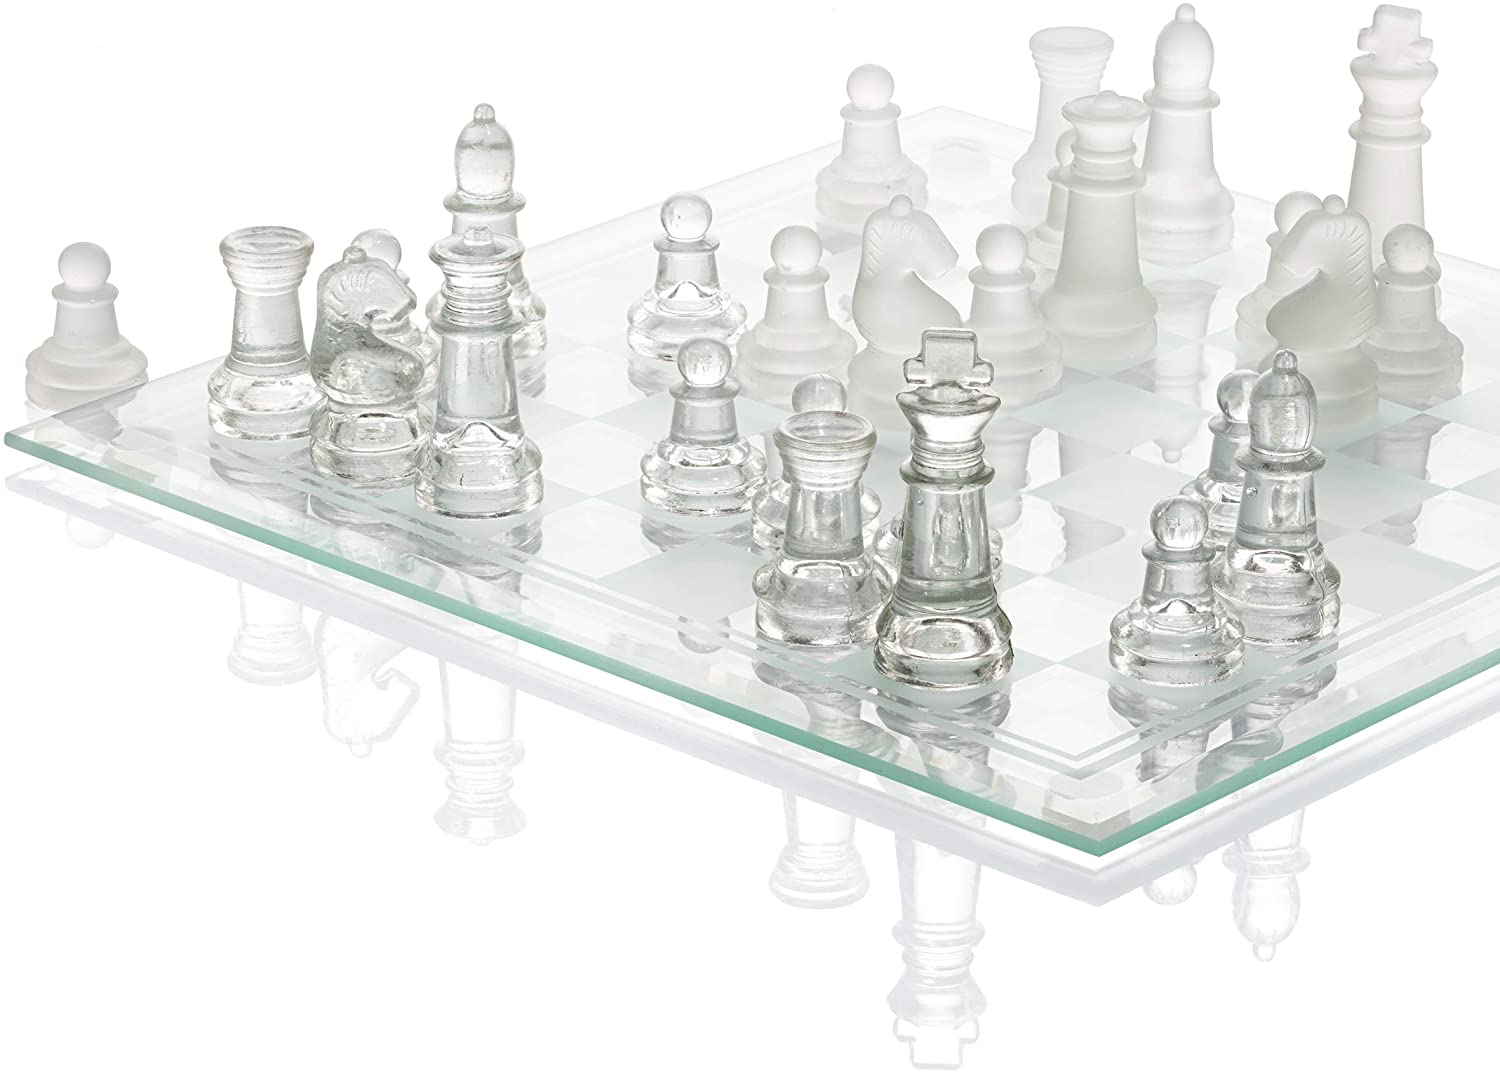 SRENTA Fine Glass Chess